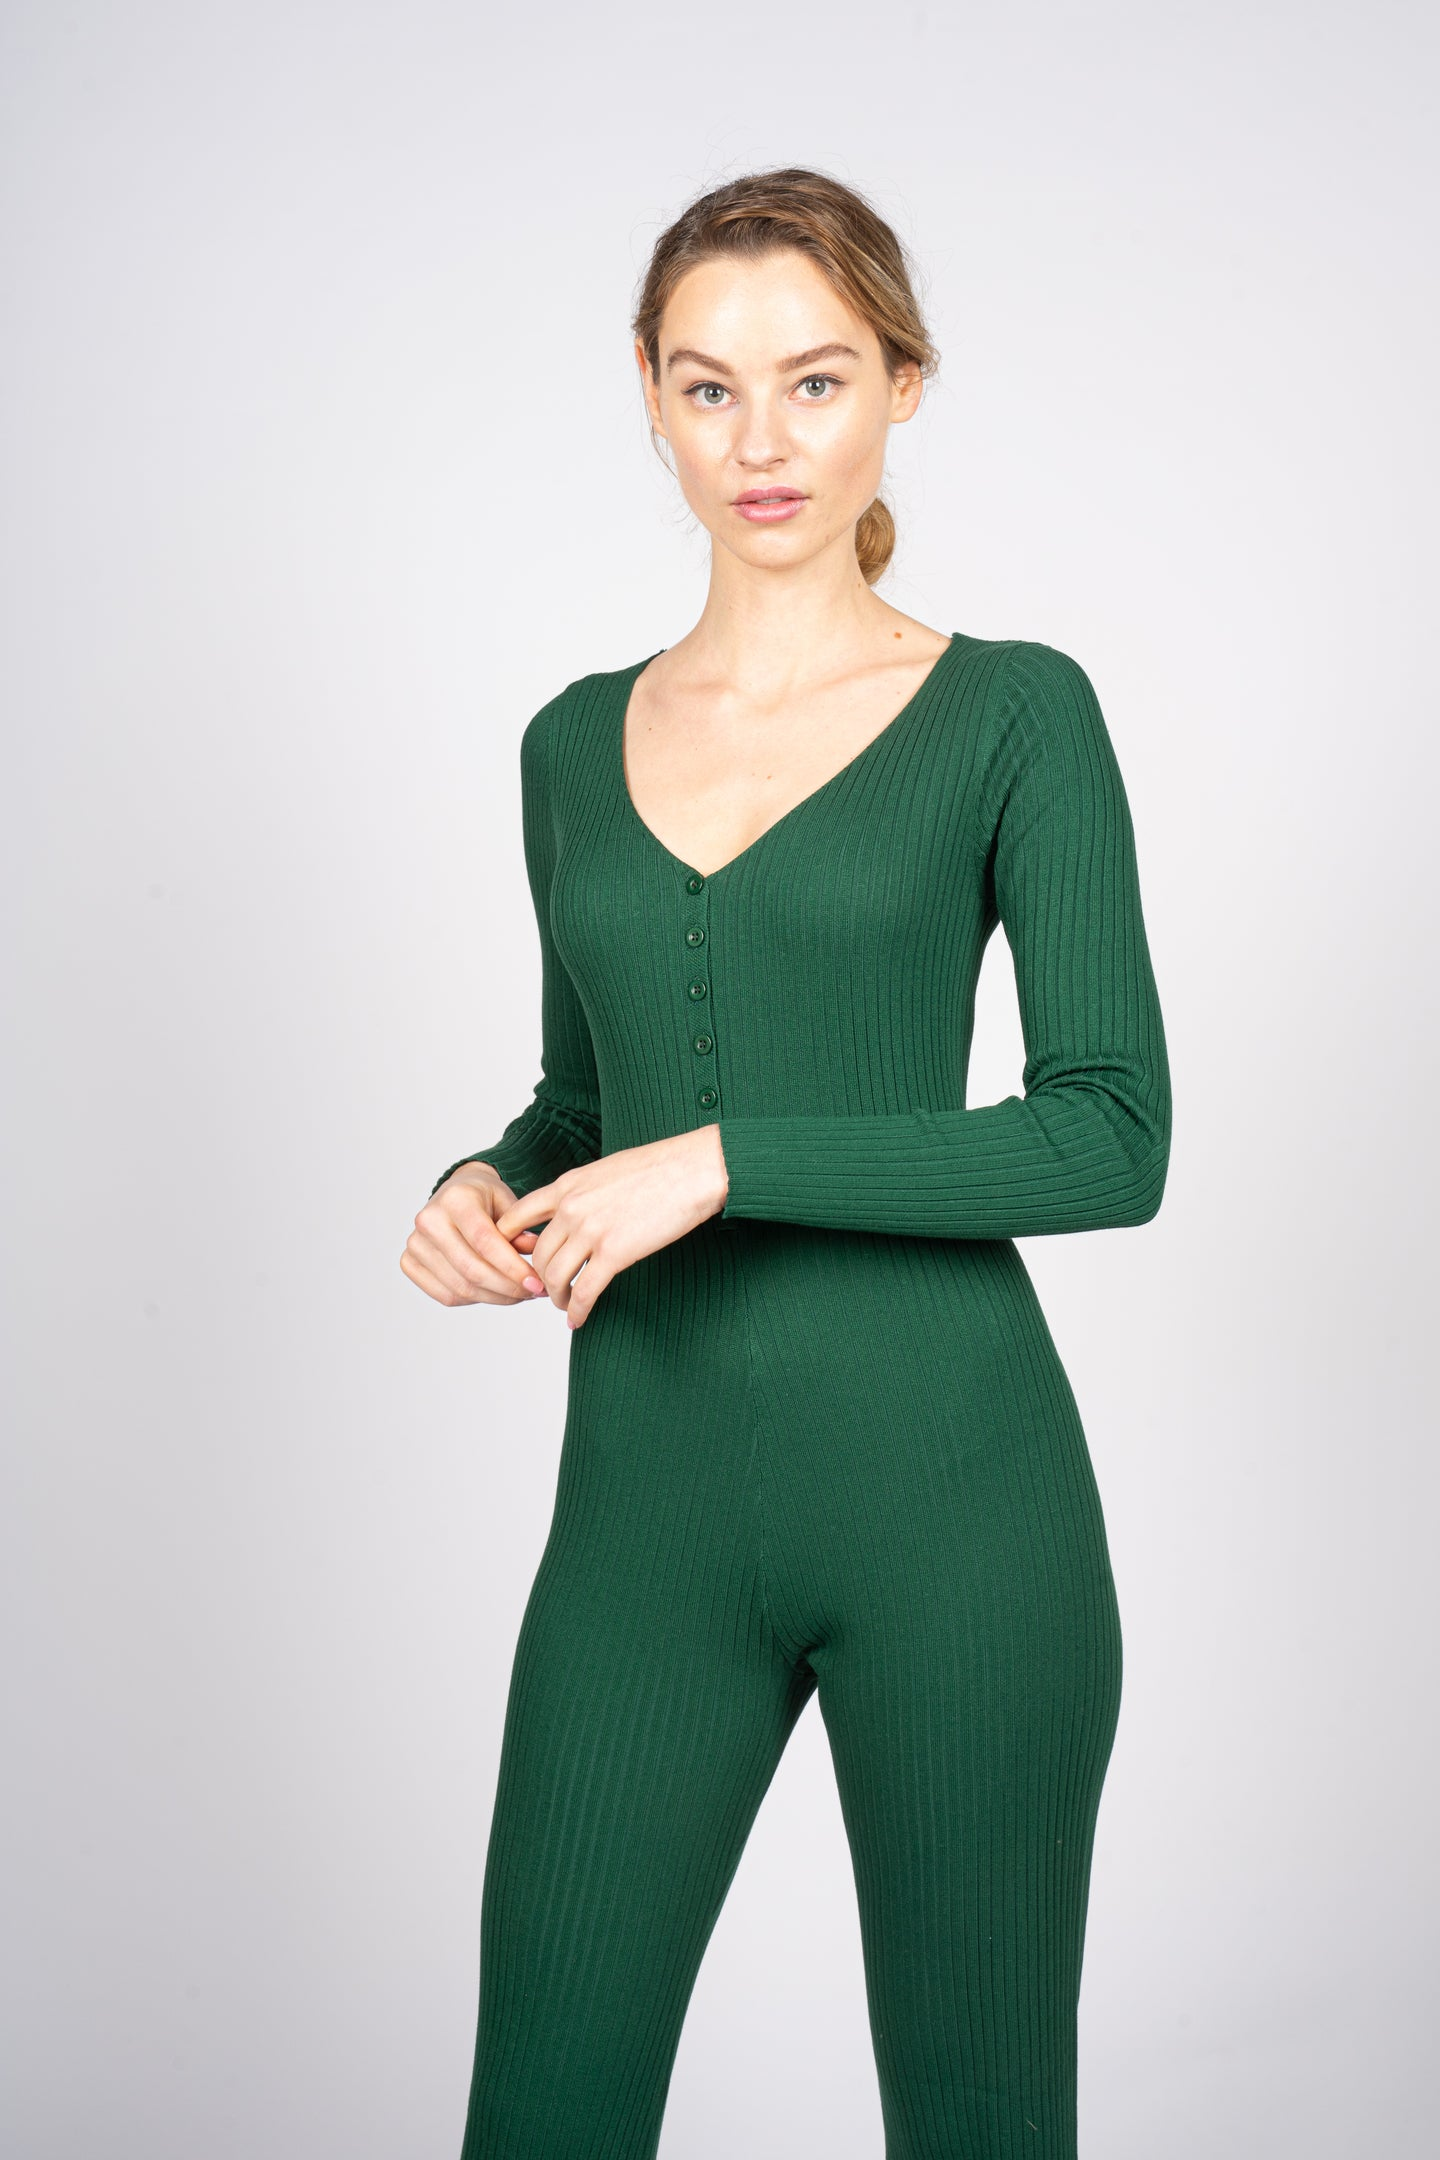 Green Knitted Jumpsuit with Front Button Opening